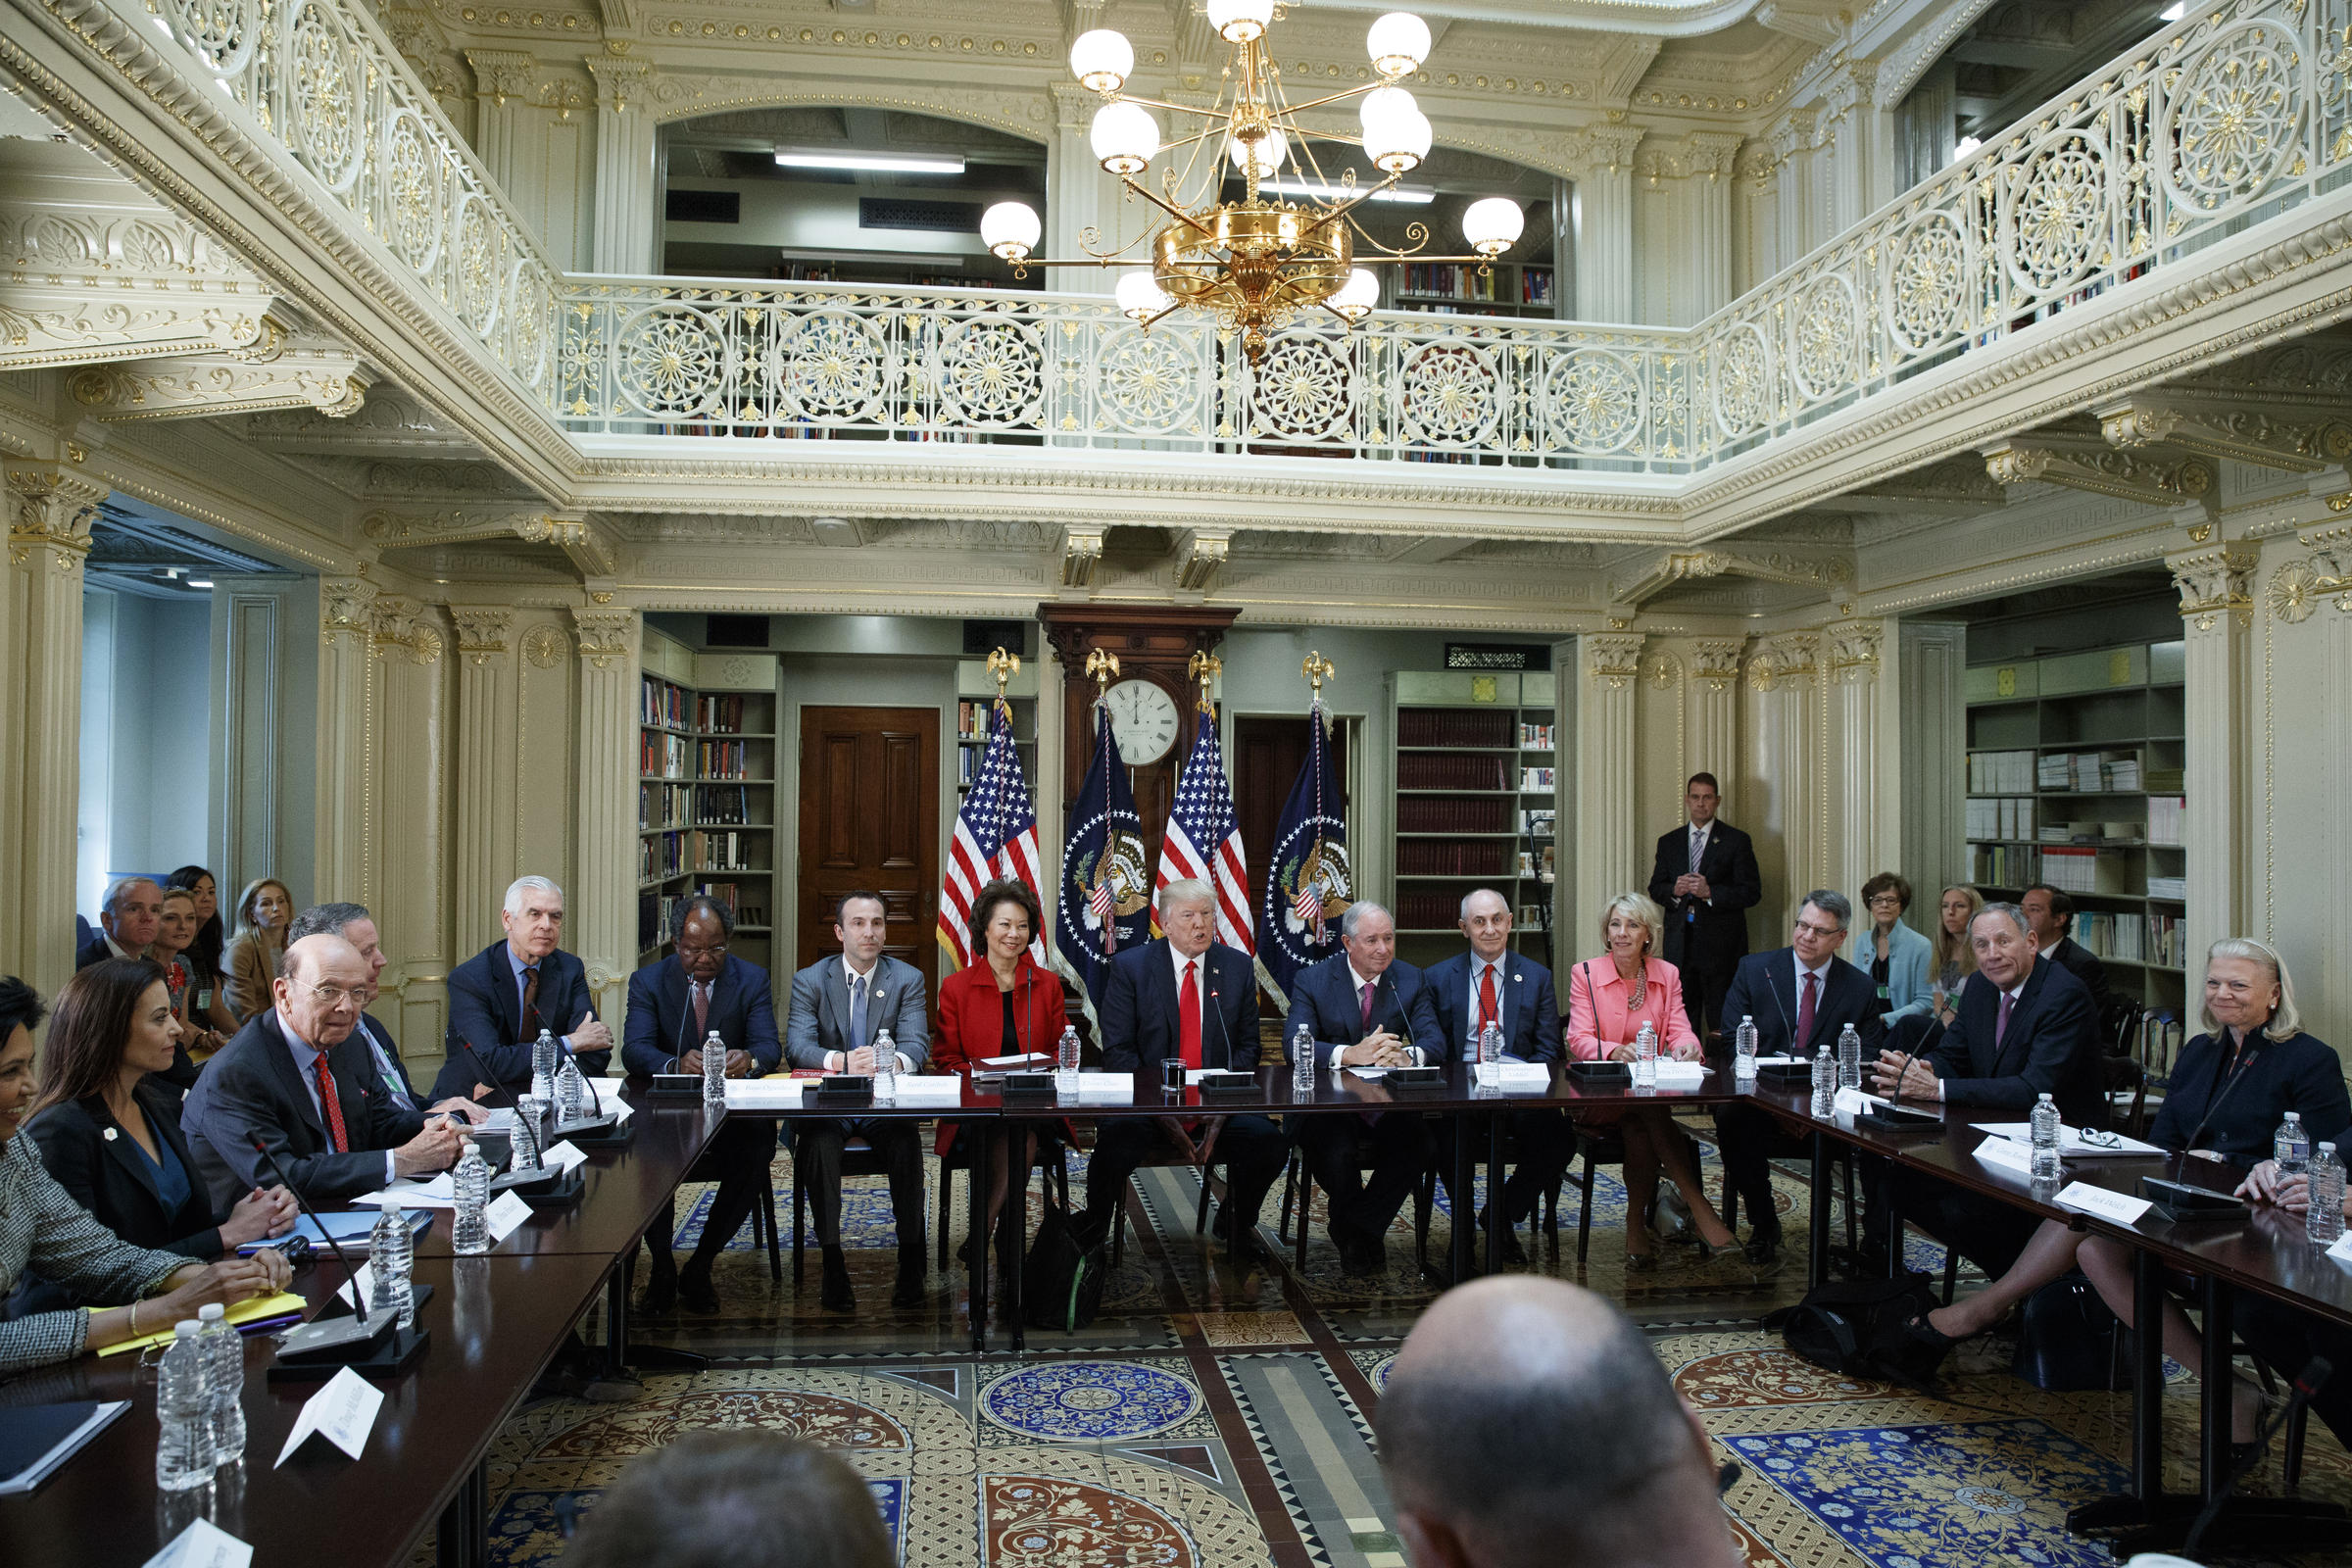 President Donald Trump speaks during a meeting with business leaders in the State Department Library of the Eisenhower Executive Office Building on the White House complex in Washington Tuesday